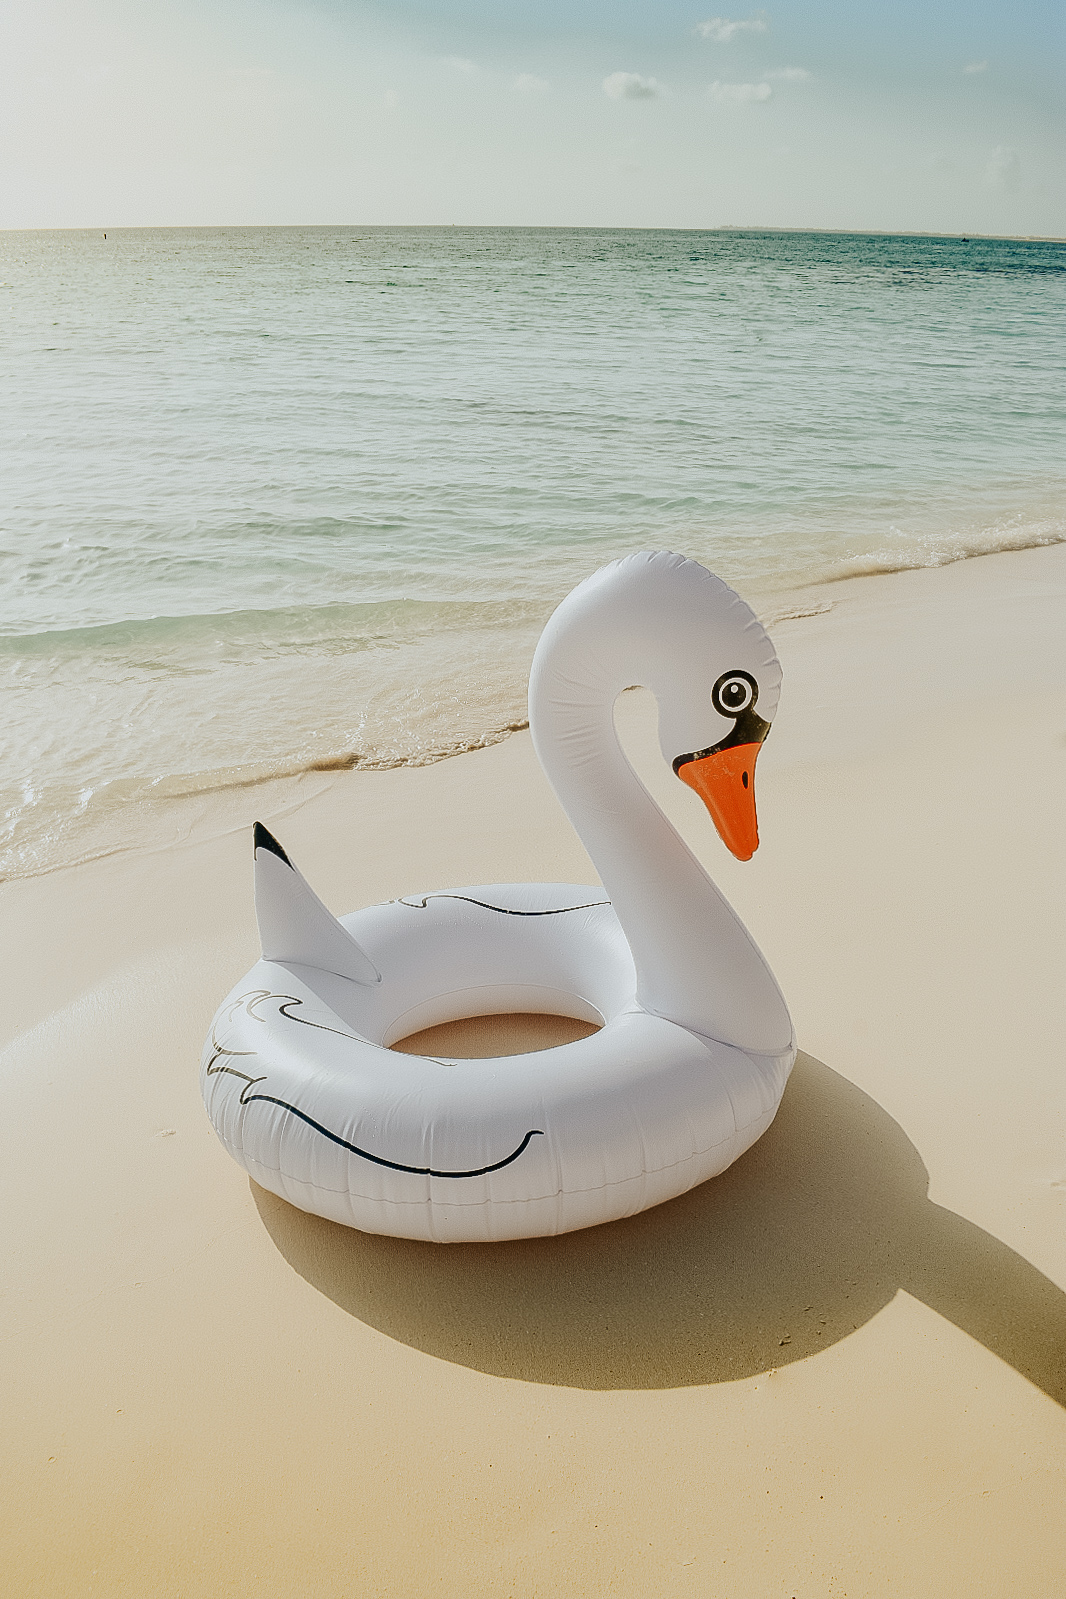 I had to leave my swan floatie behind